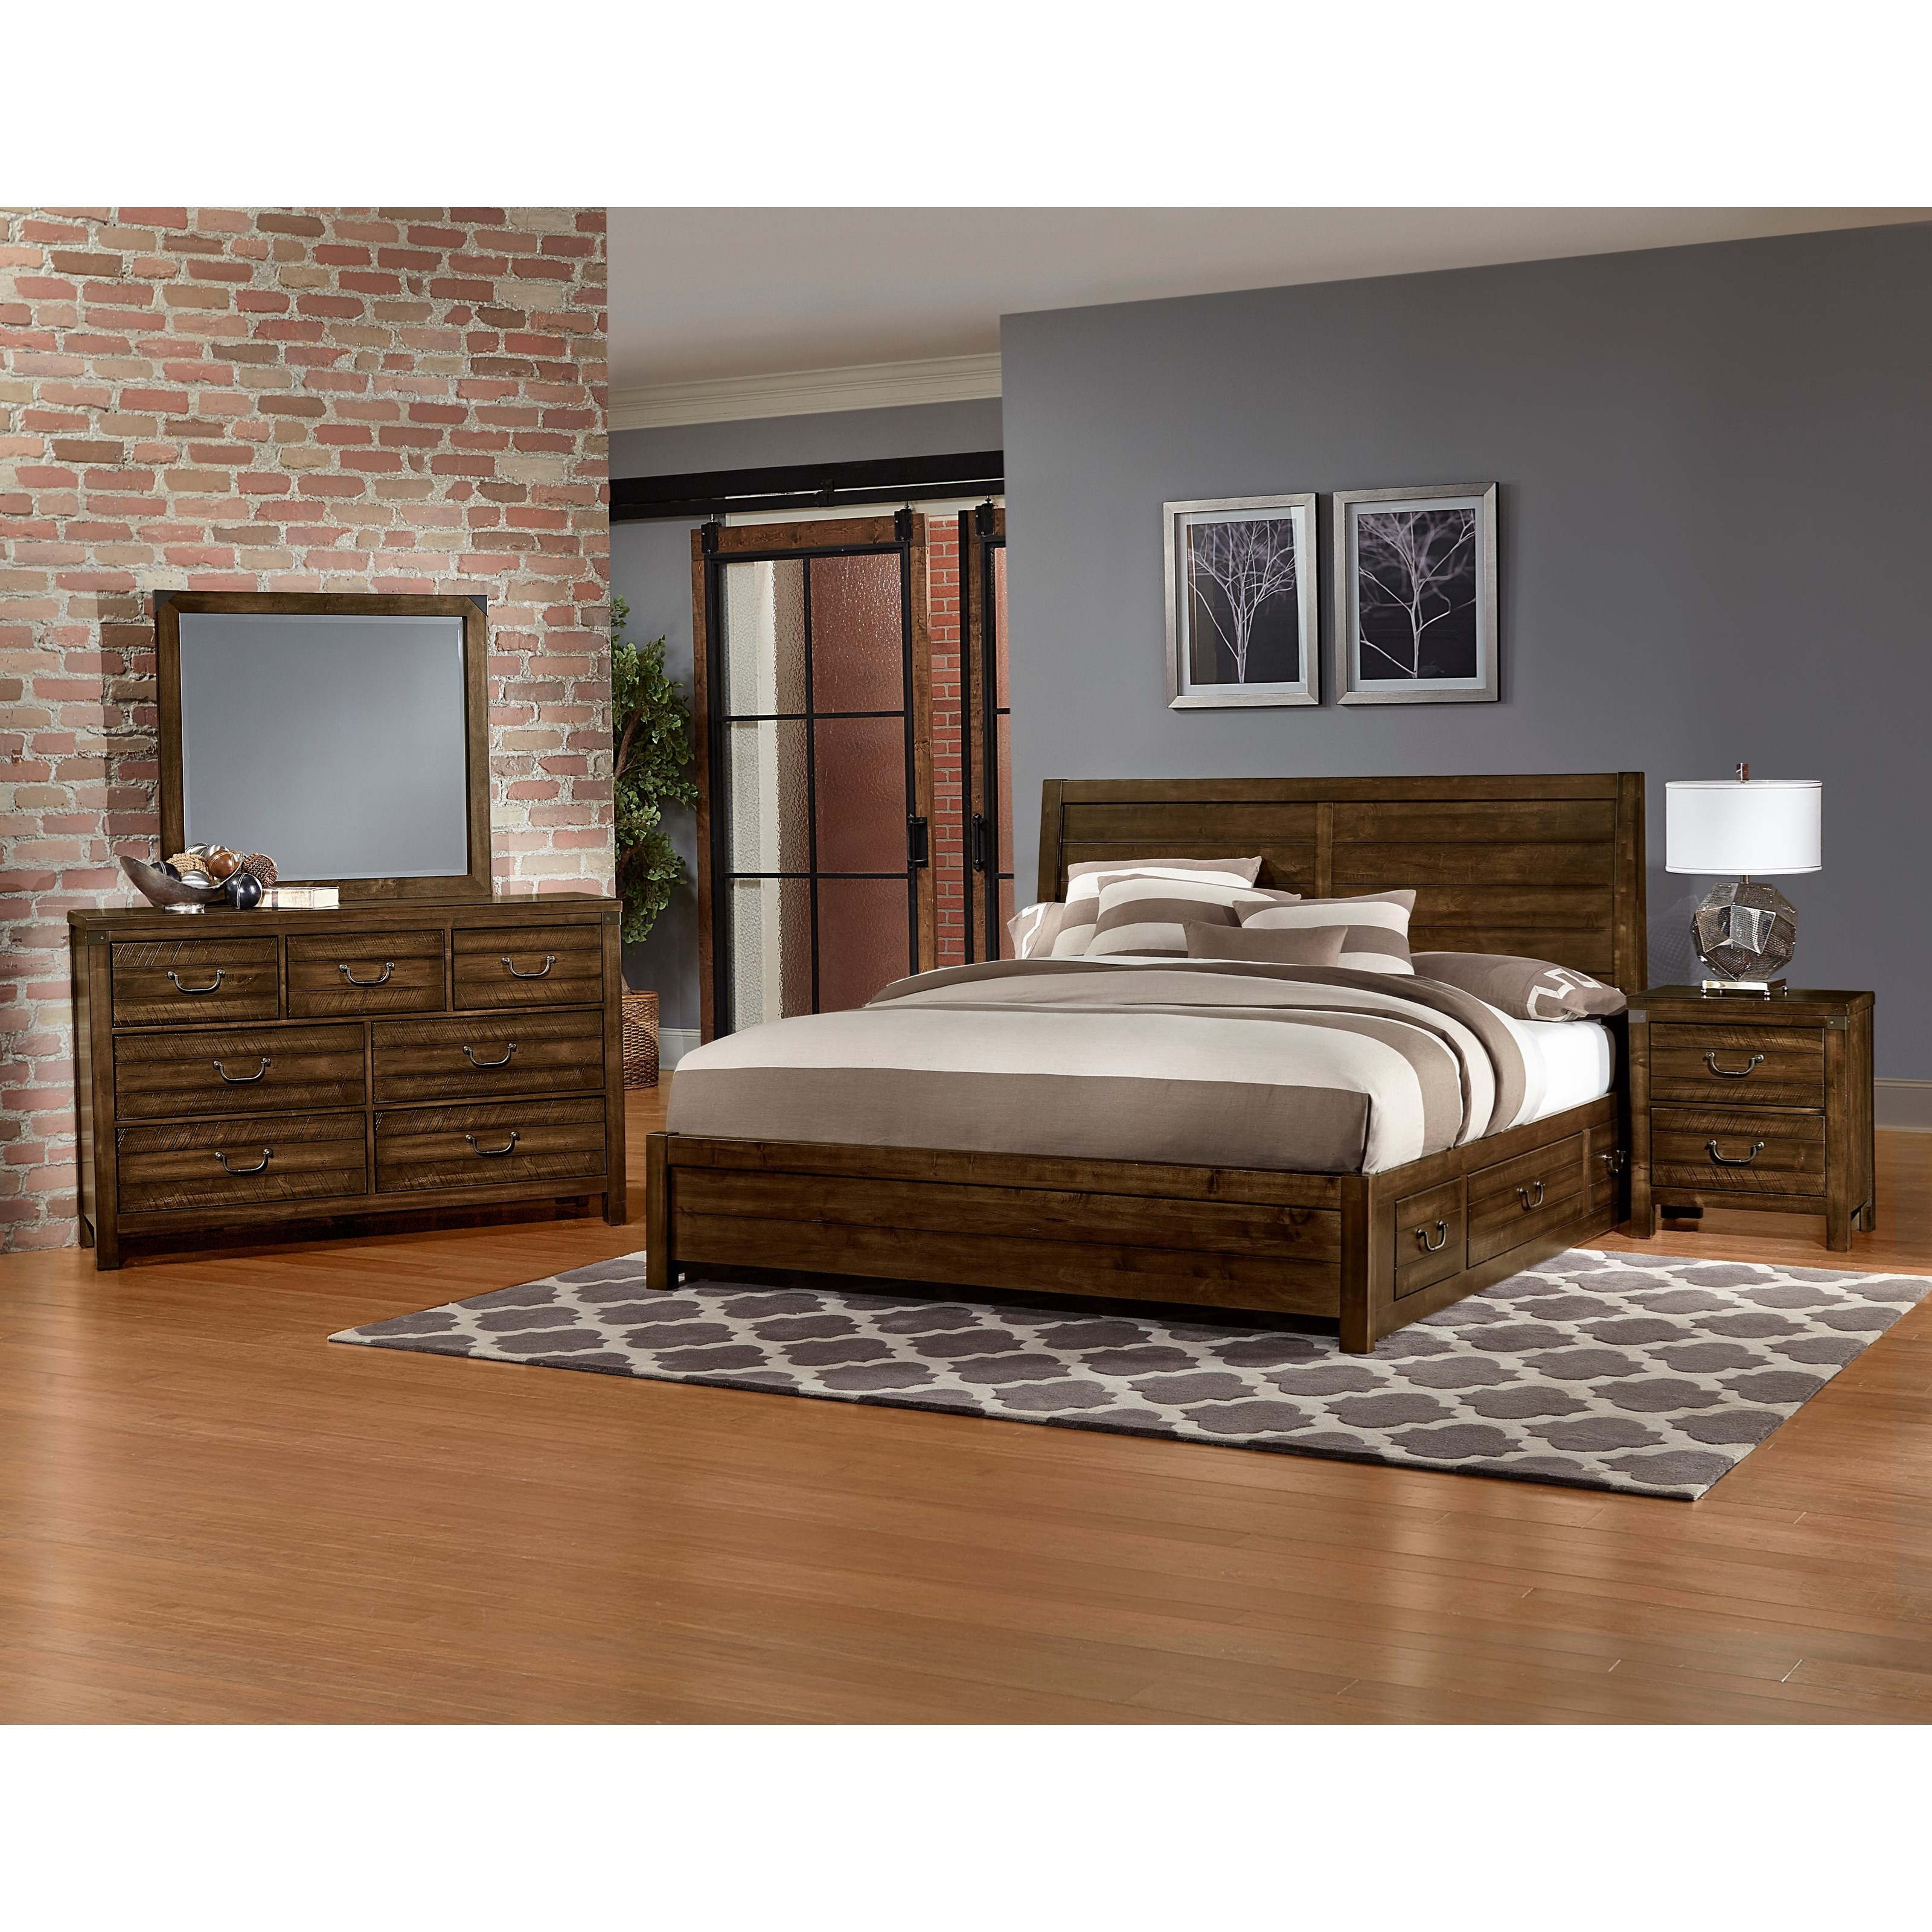 Artisan Post By Vaughan Bassett Sedgwick Queen Bedroom Group Becker Furniture World